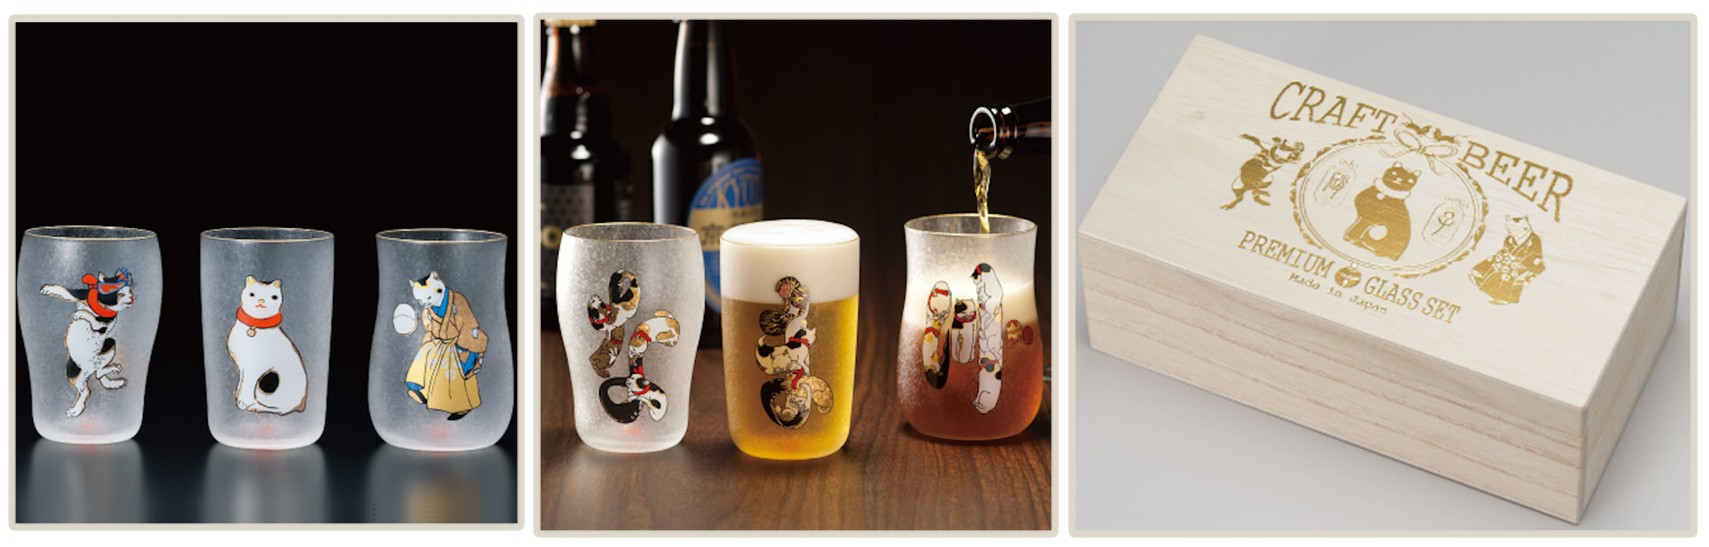 Ukiyo-e Cat Beer Glasses